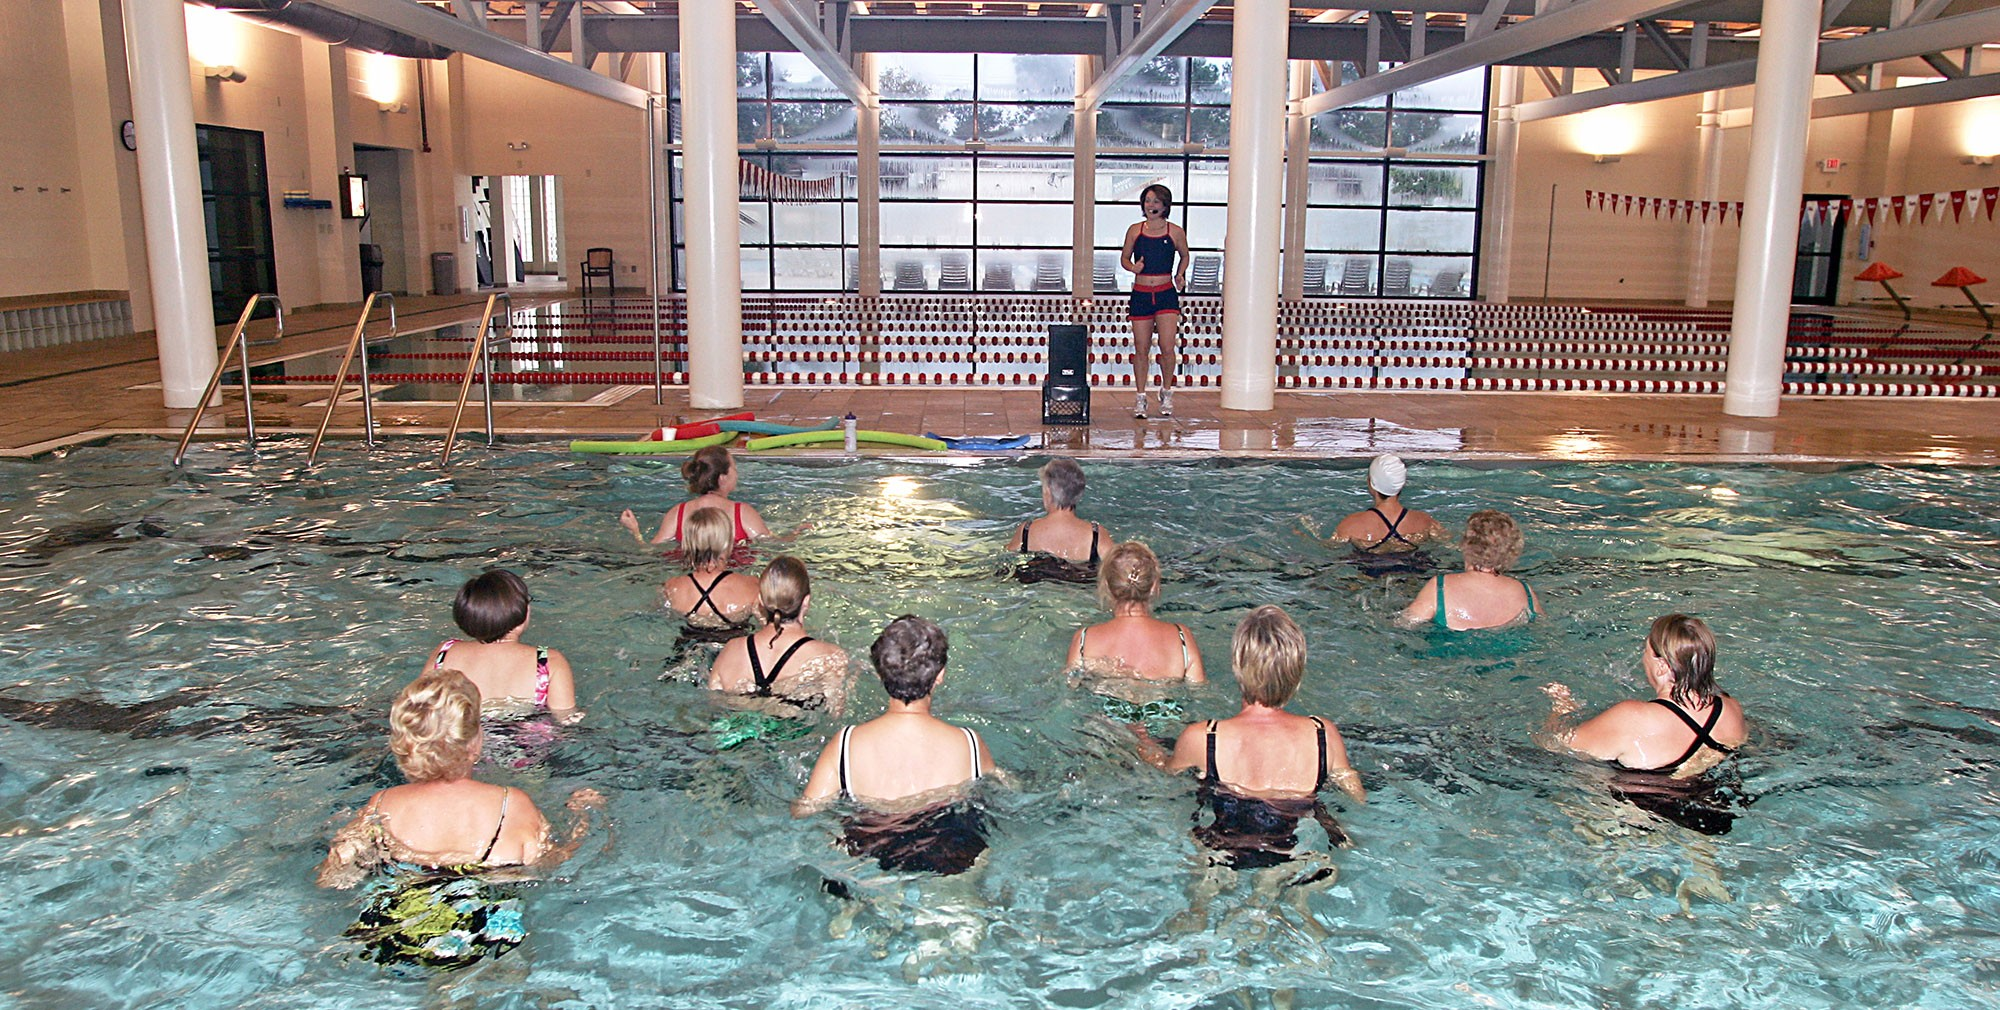 The wave, water aerobic, class in the indoor pool at Red Lerille's in Lafayette, LA